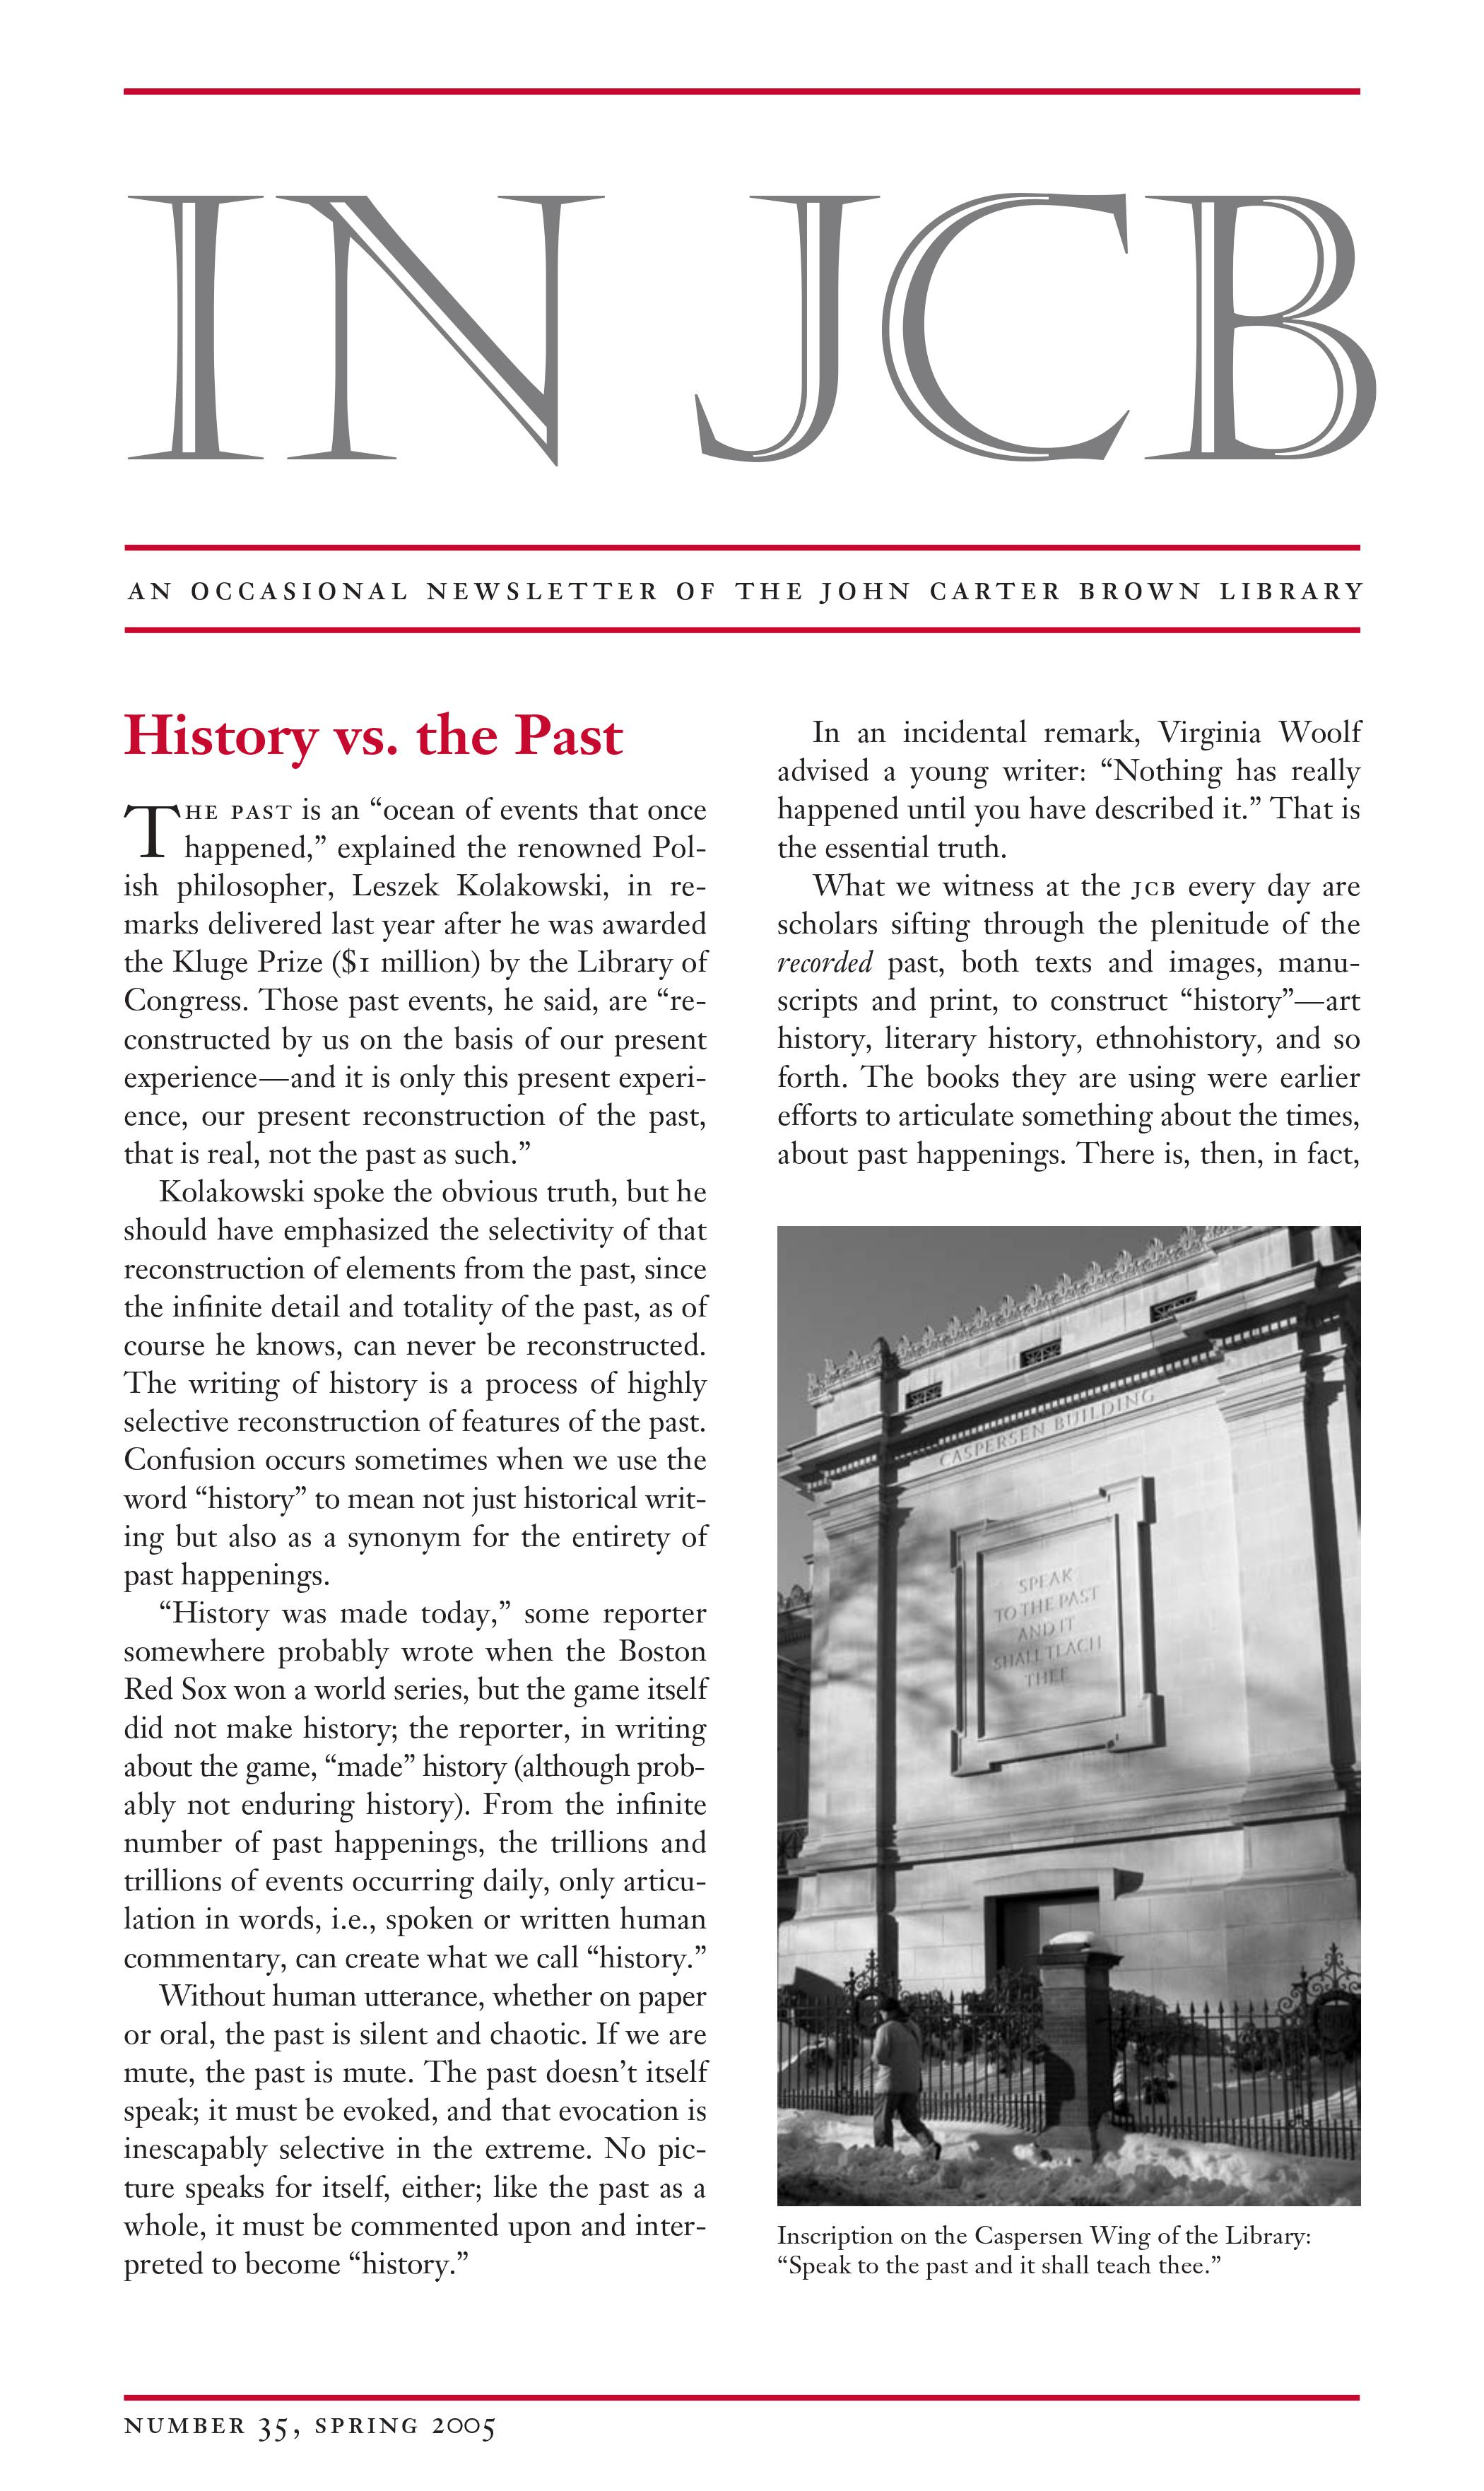 text of a newsletter and an image of one side of the exterior of the John Carter Brown Library